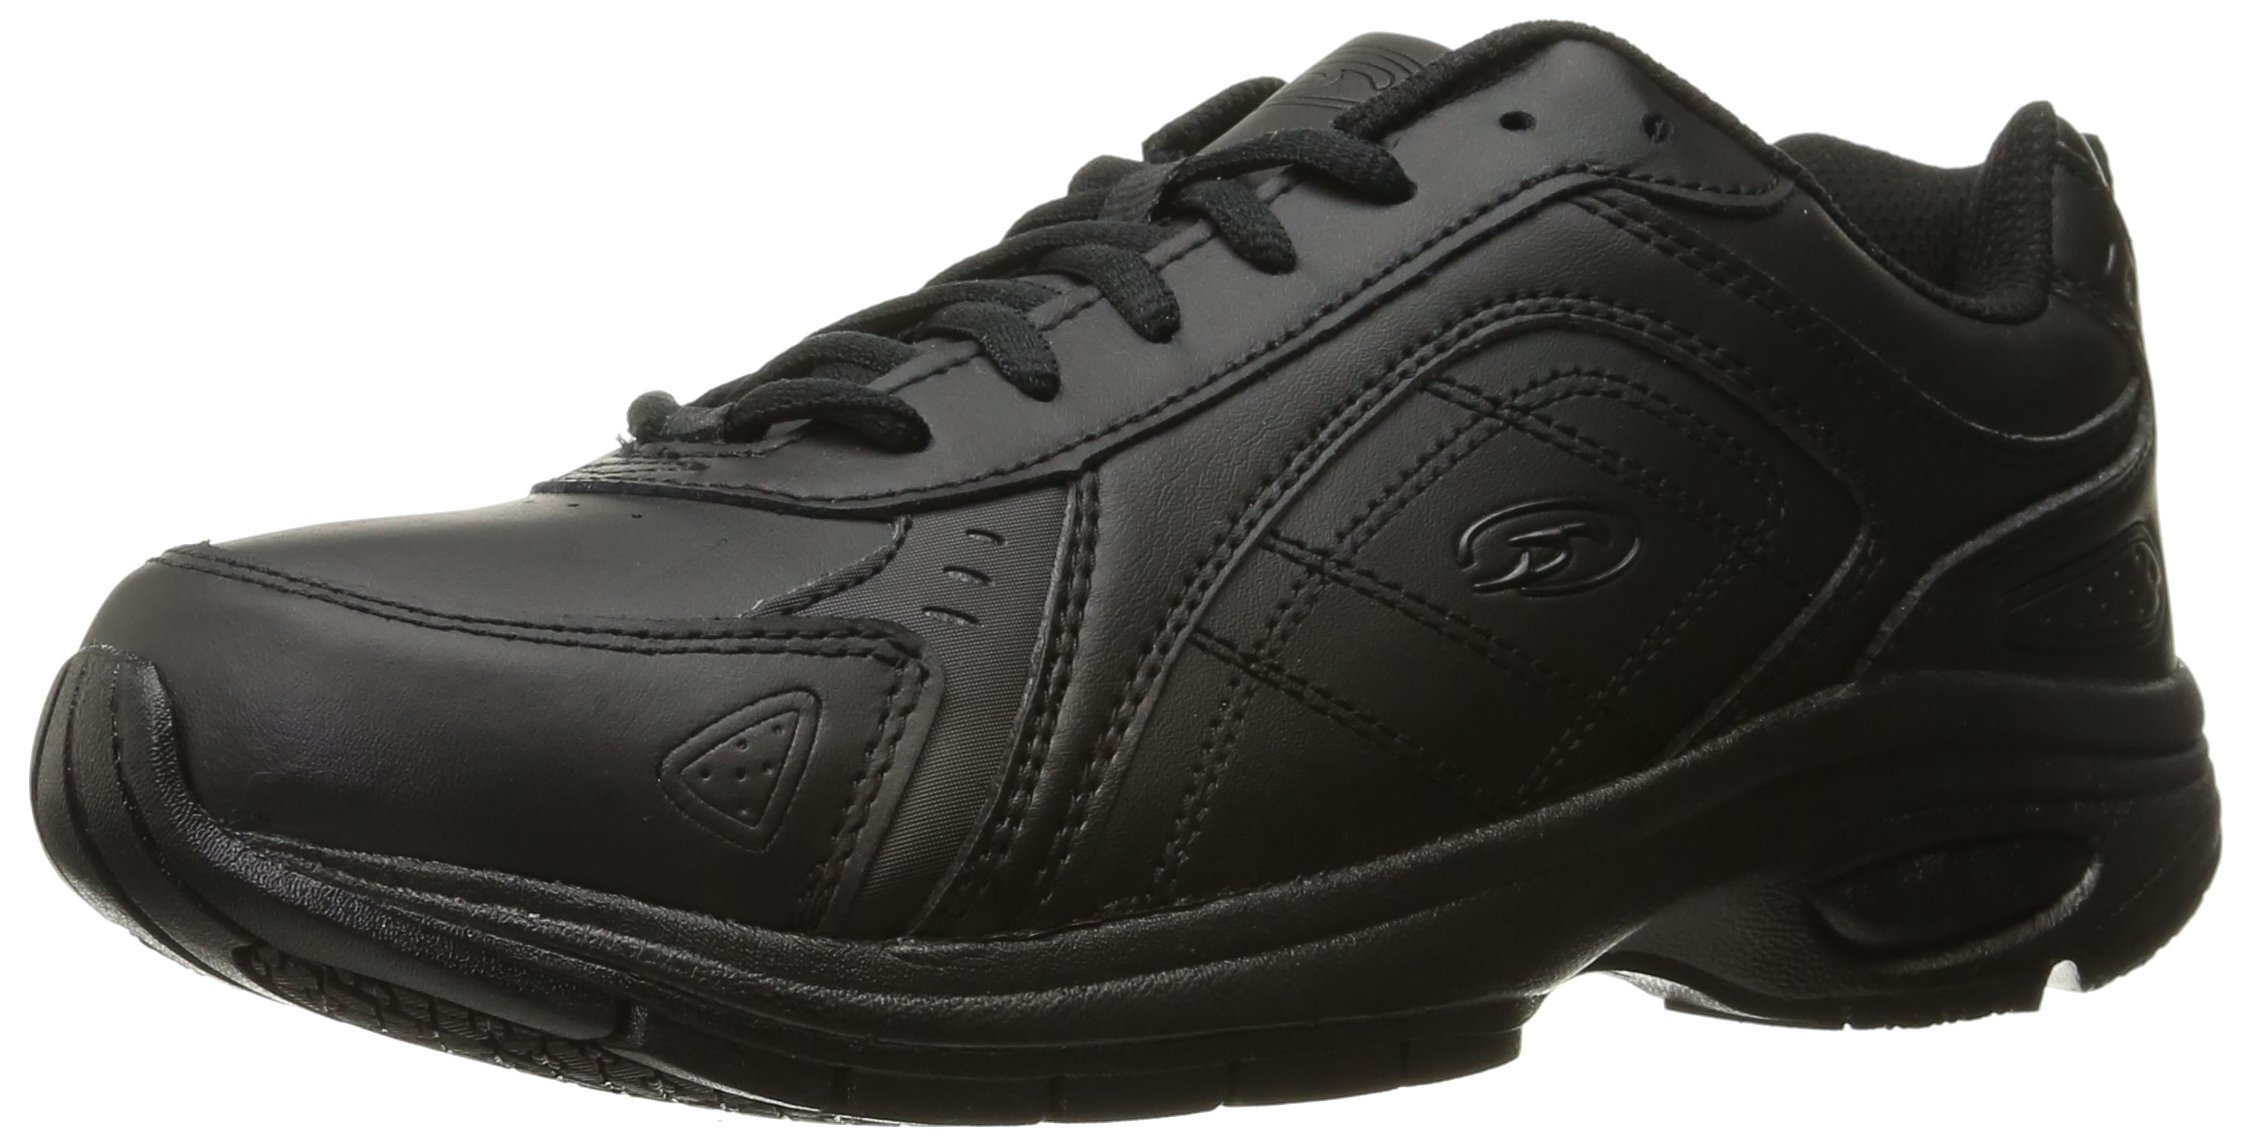 Dr. Scholl's Men's Sprint Health Care and Food Service Shoe, Black, 8 W US